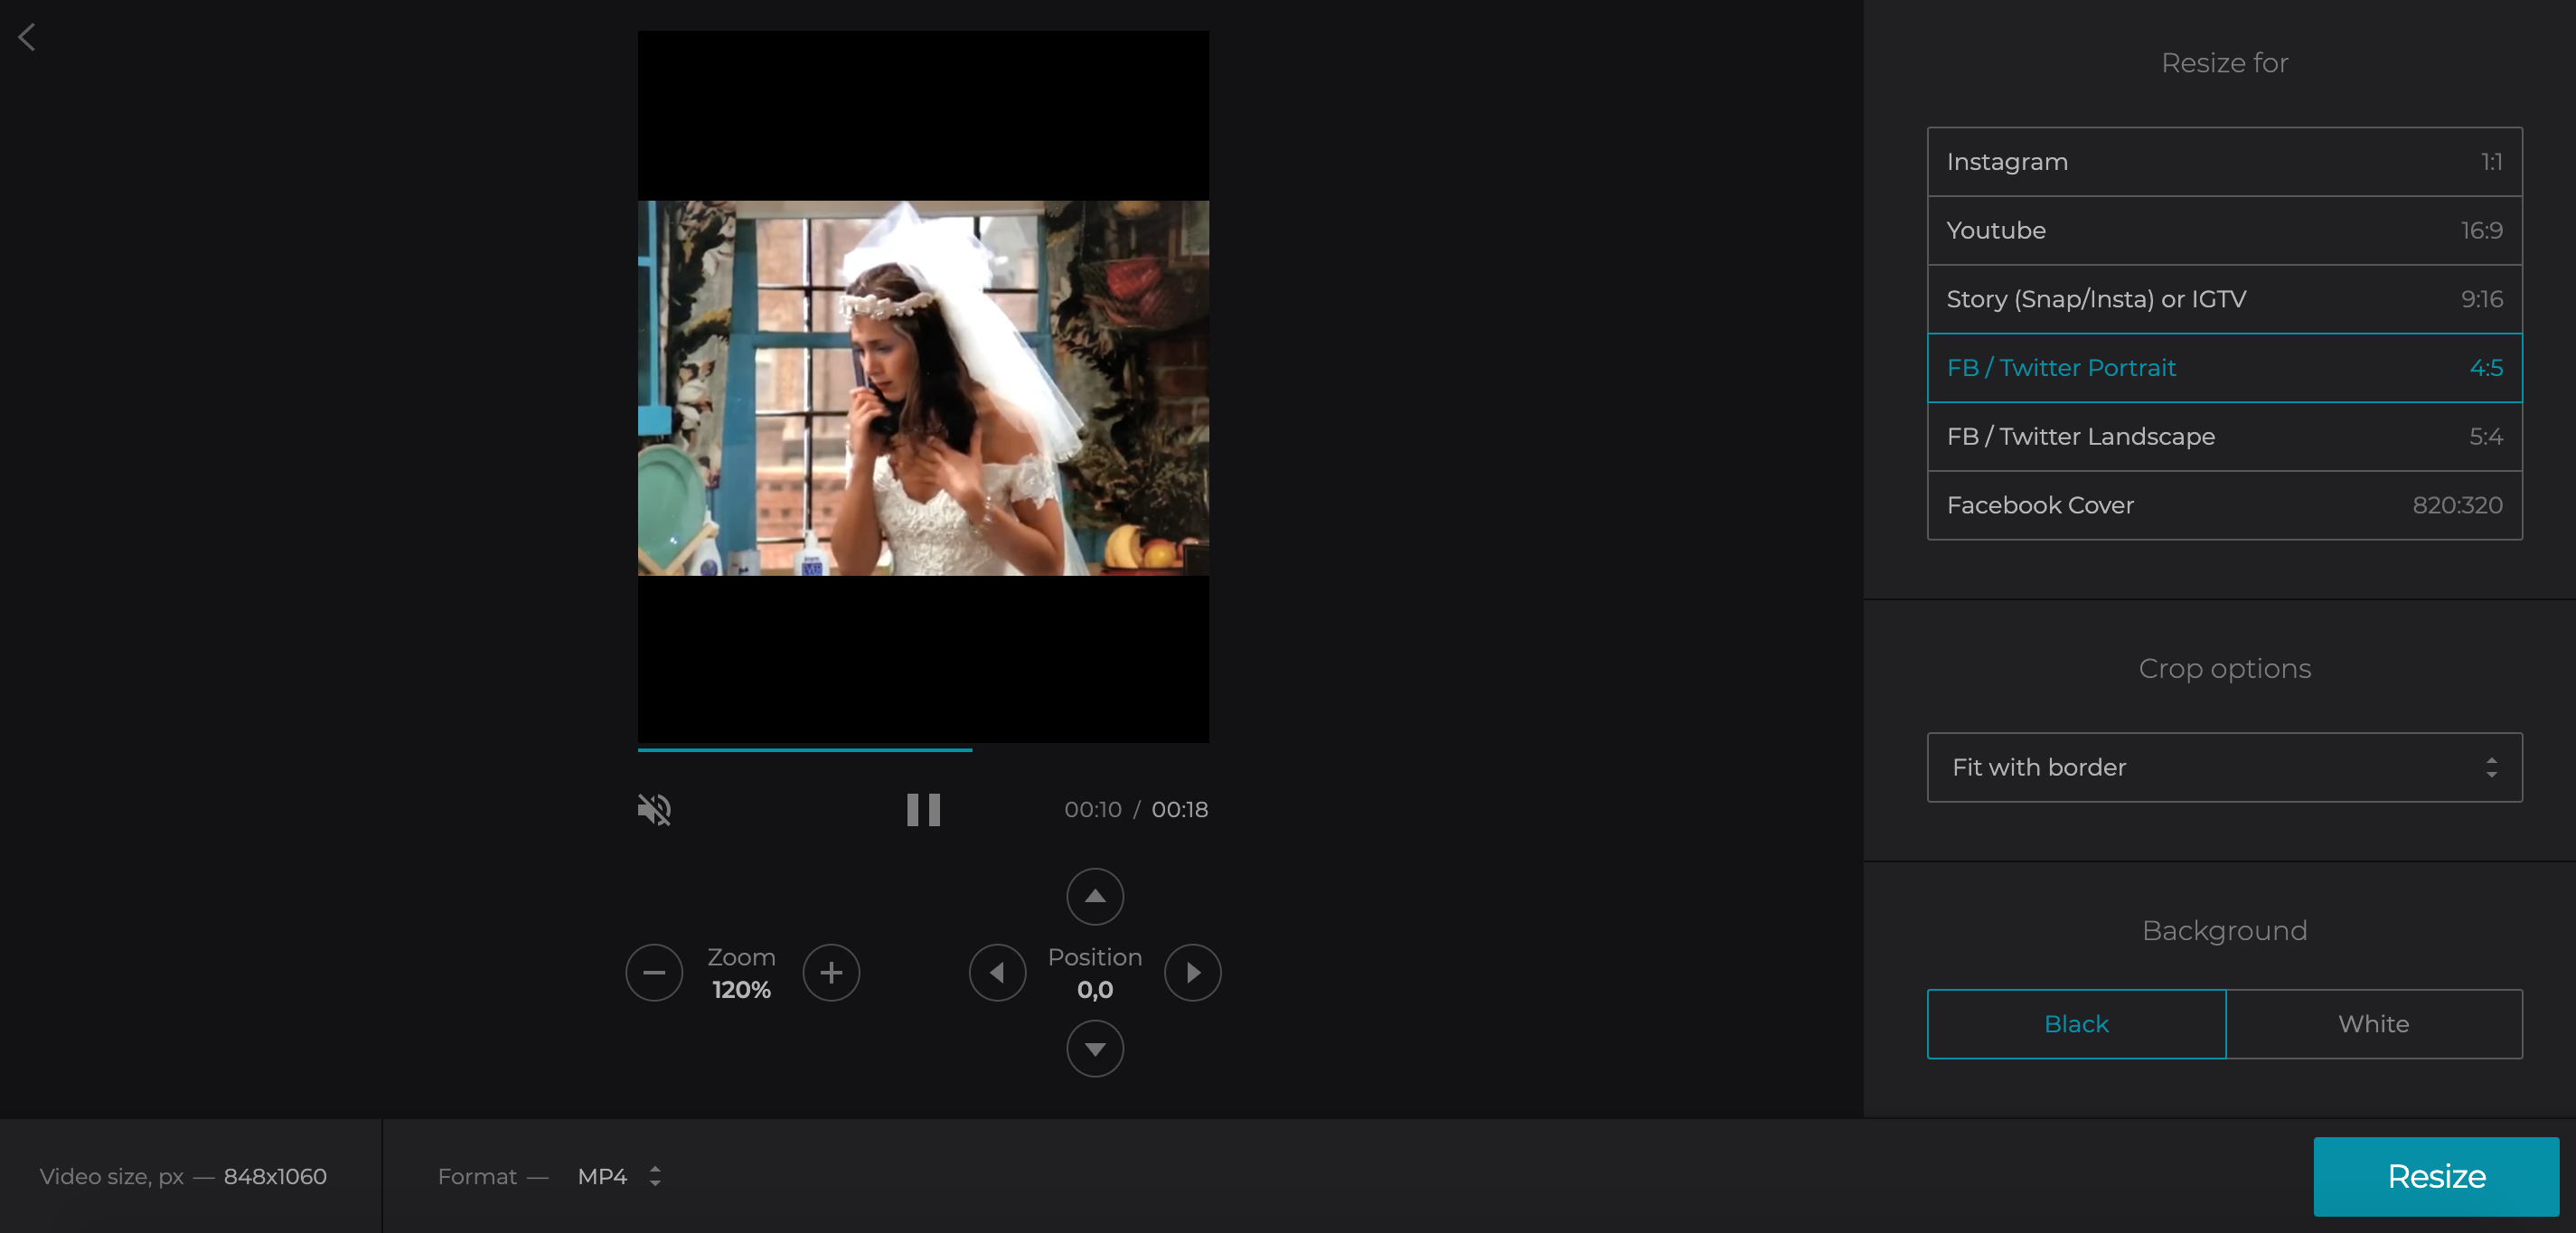 Select the necessary option to resize video for Twitter